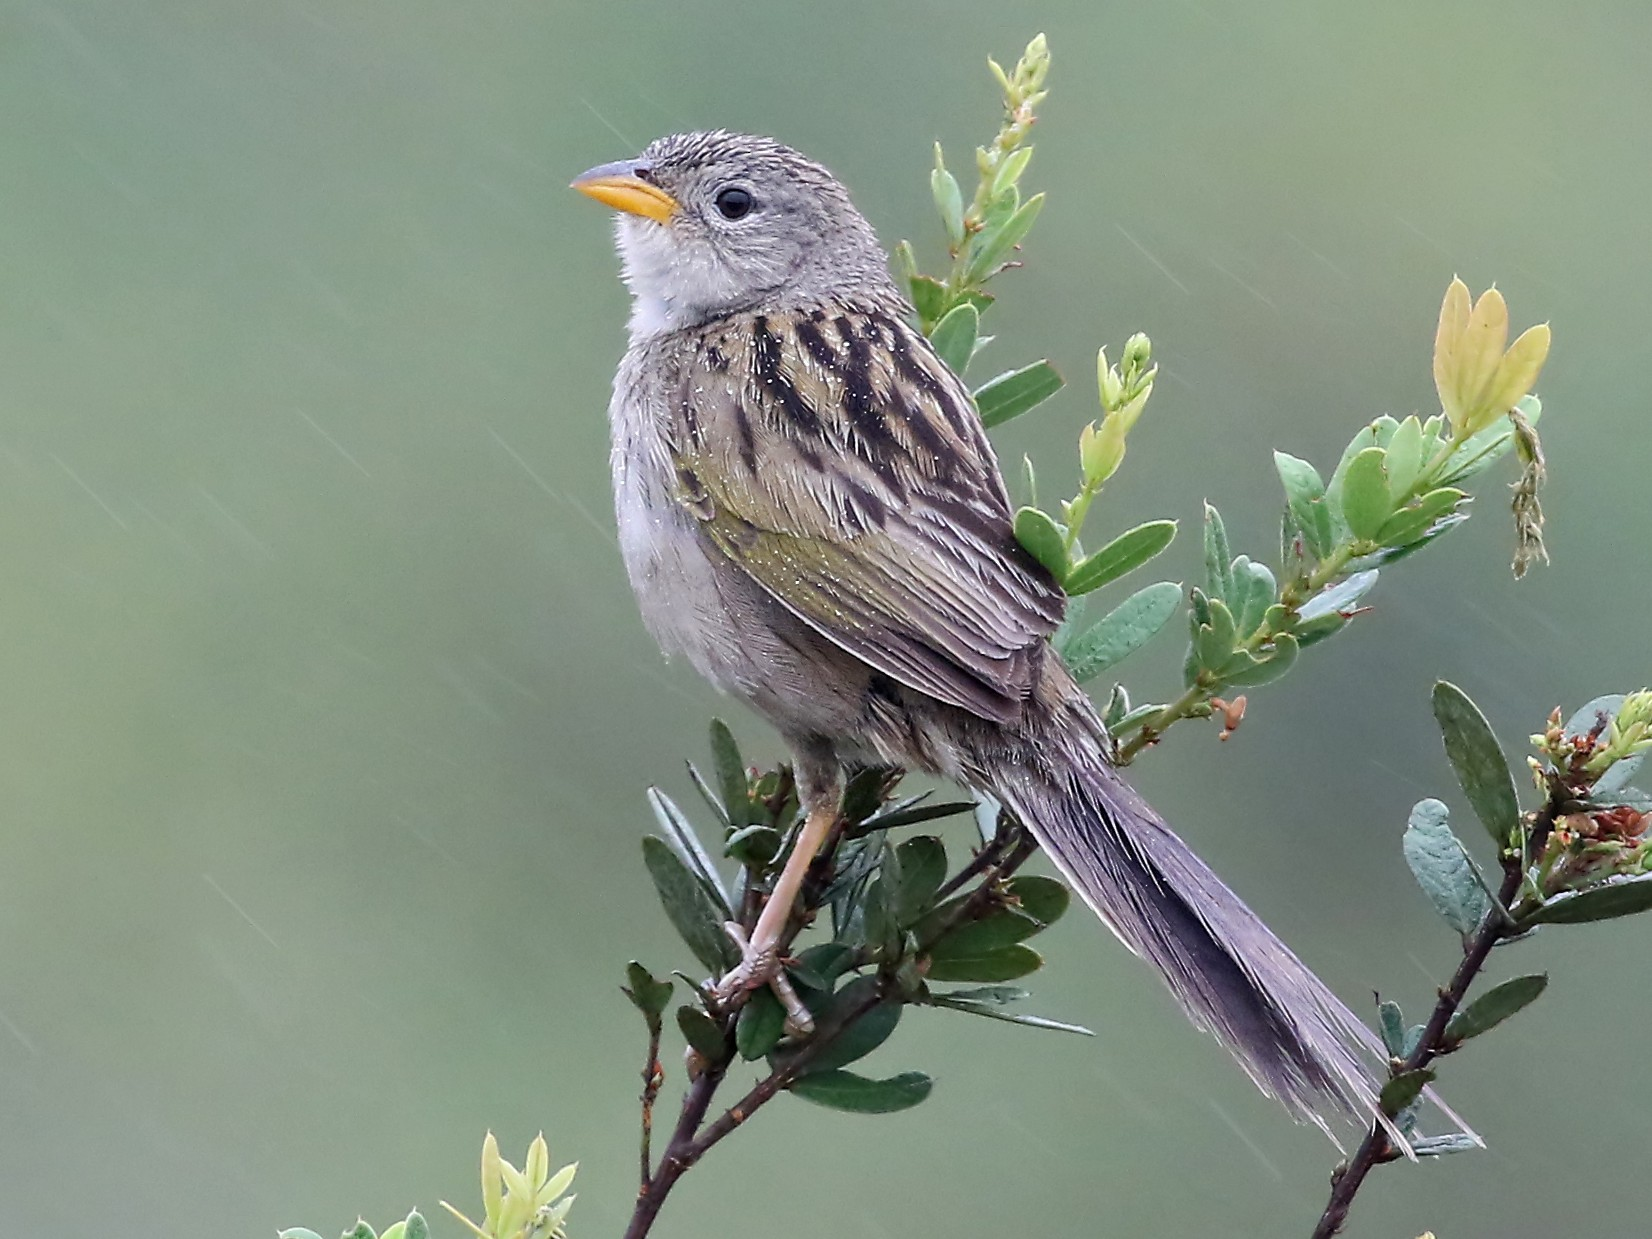 Wedge-tailed Grass-Finch - Phillip Edwards